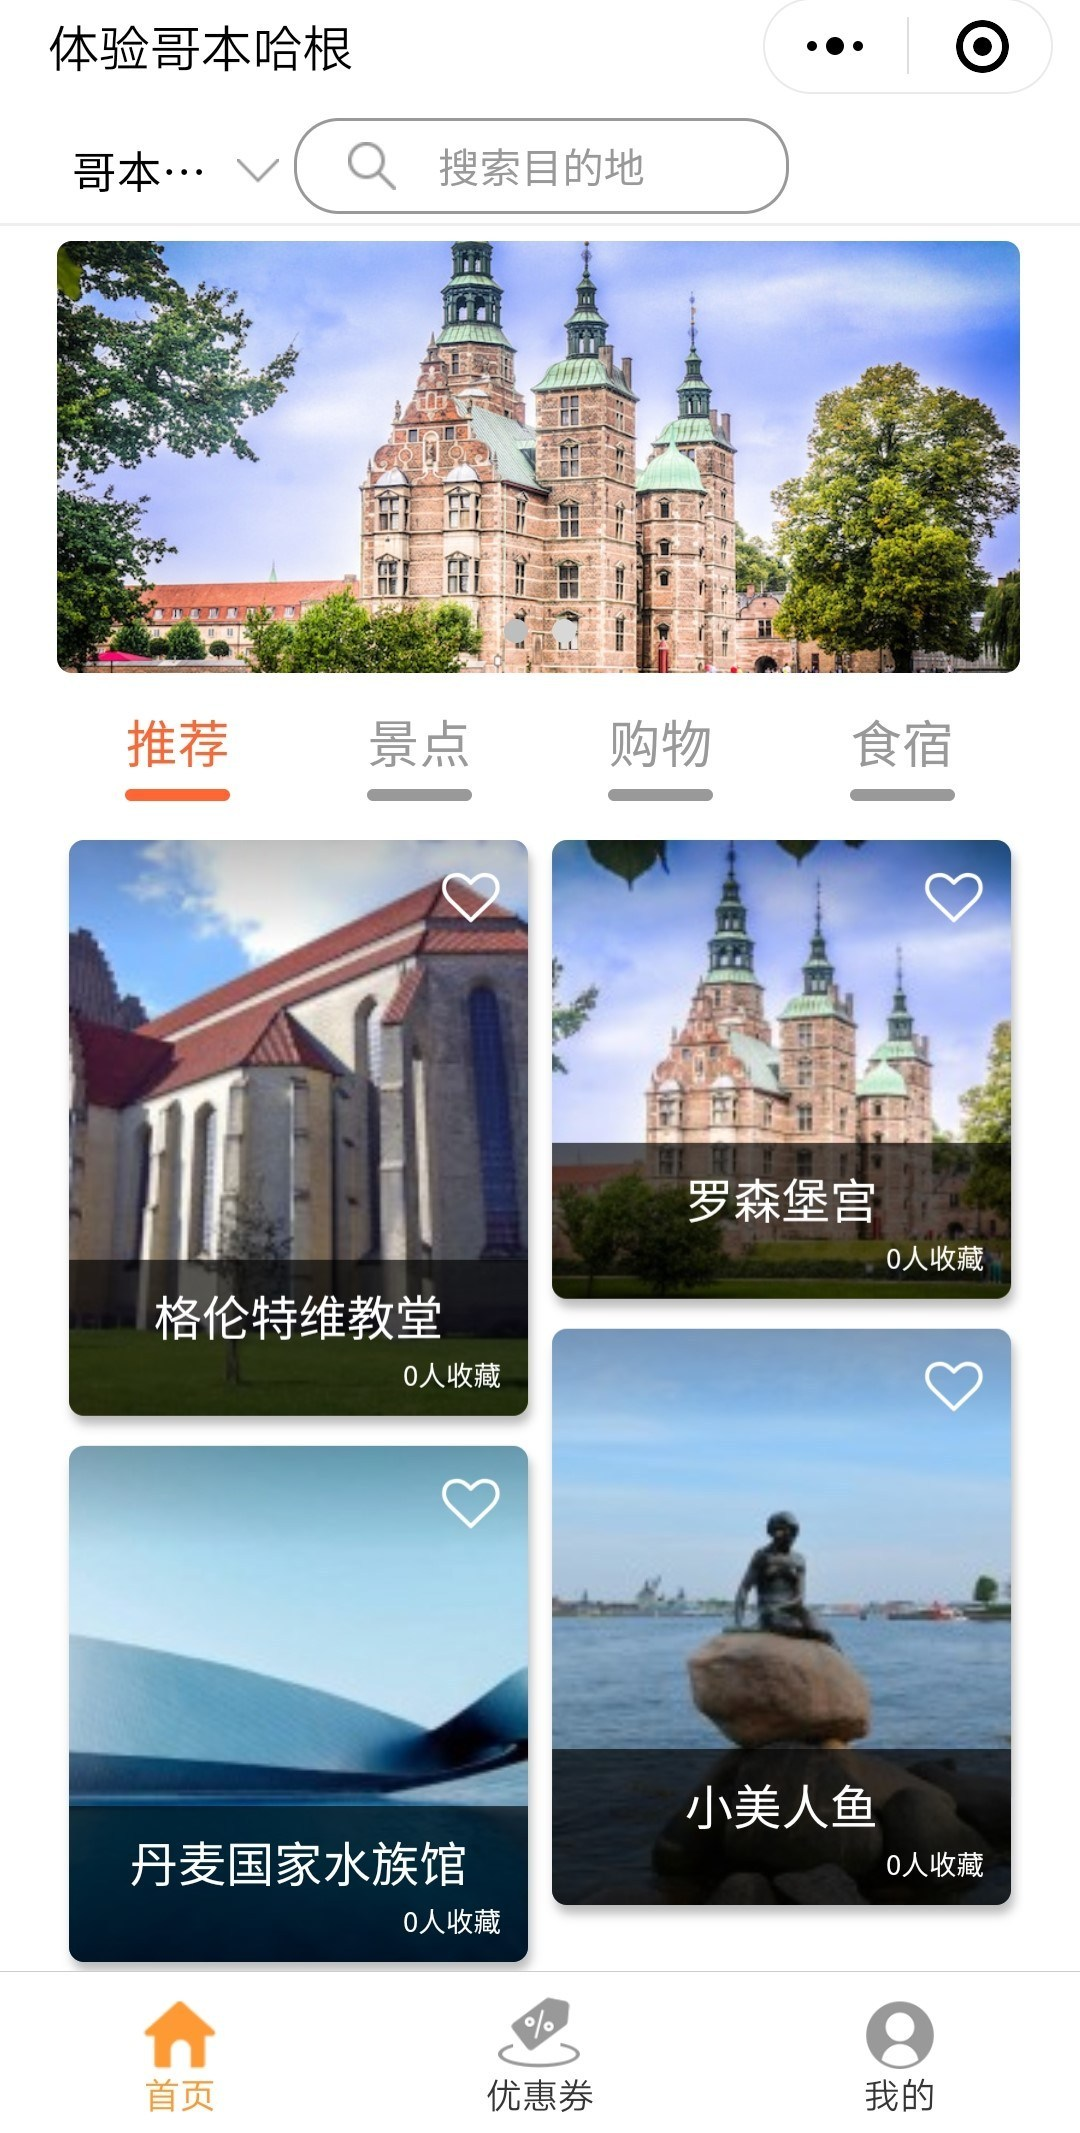 Chinese Social Media Platforms Marketing - EuroPass